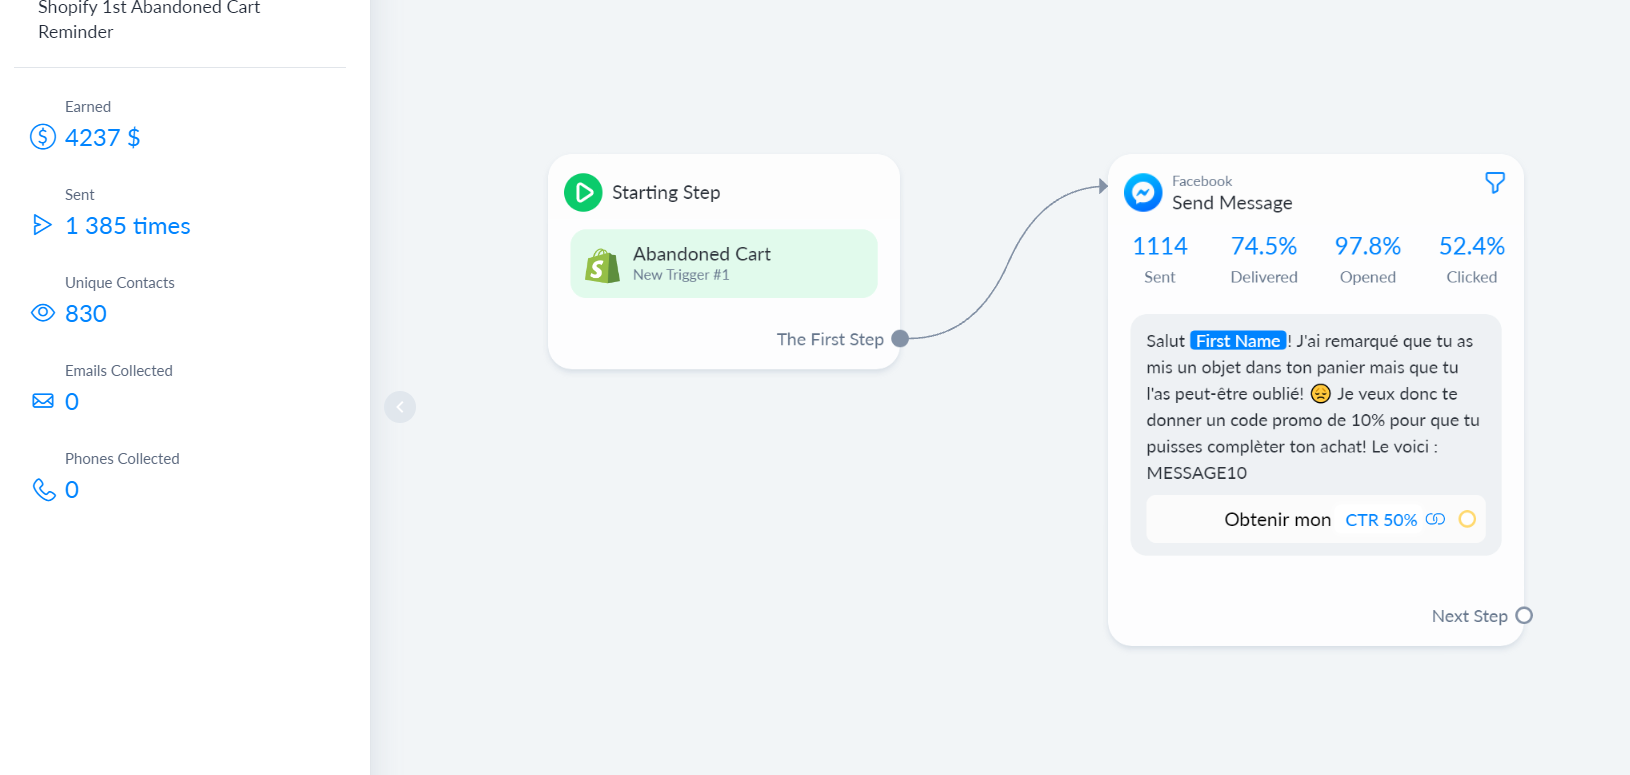 An abandonned cart chatbot flow showing how it generated over $4,000 being sent 1,385 times